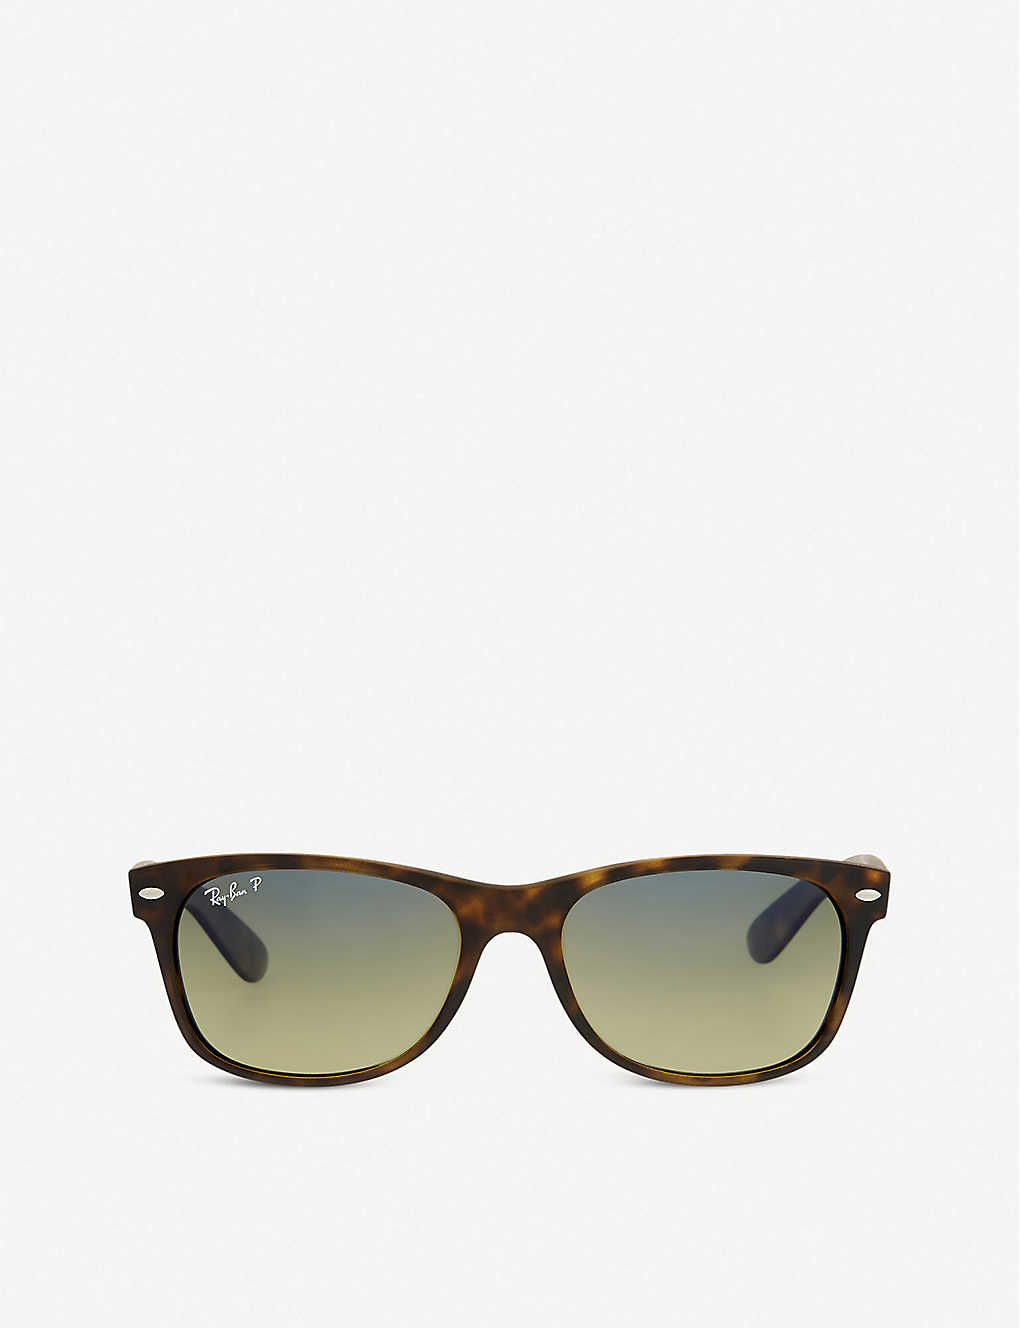 93bbb07bb45a7 Previous. Rb2132 tortoiseshell new wayfarer sunglasses - Matte havana ...